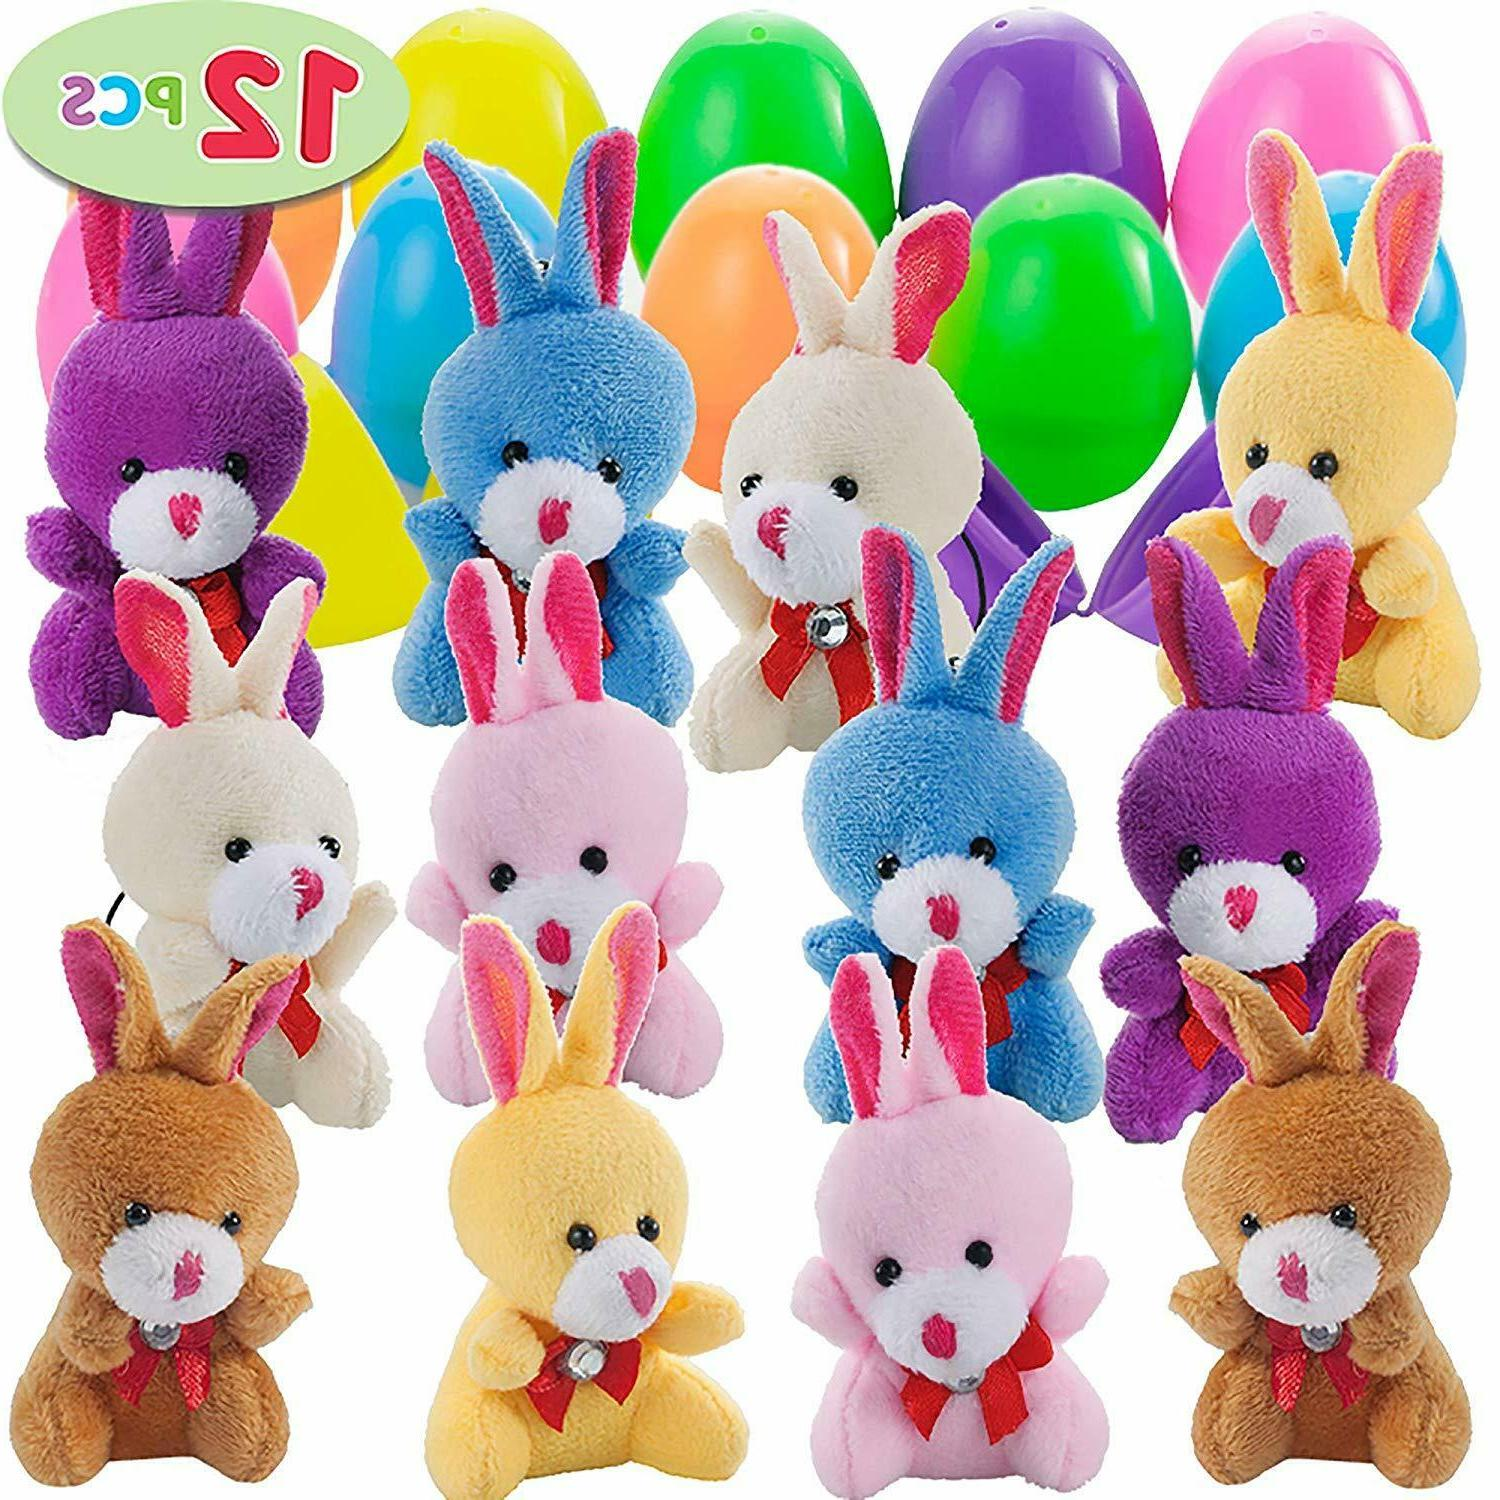 """12 PCs Filled Easter Eggs with Plush Bunny, 2.25"""" Bright C"""